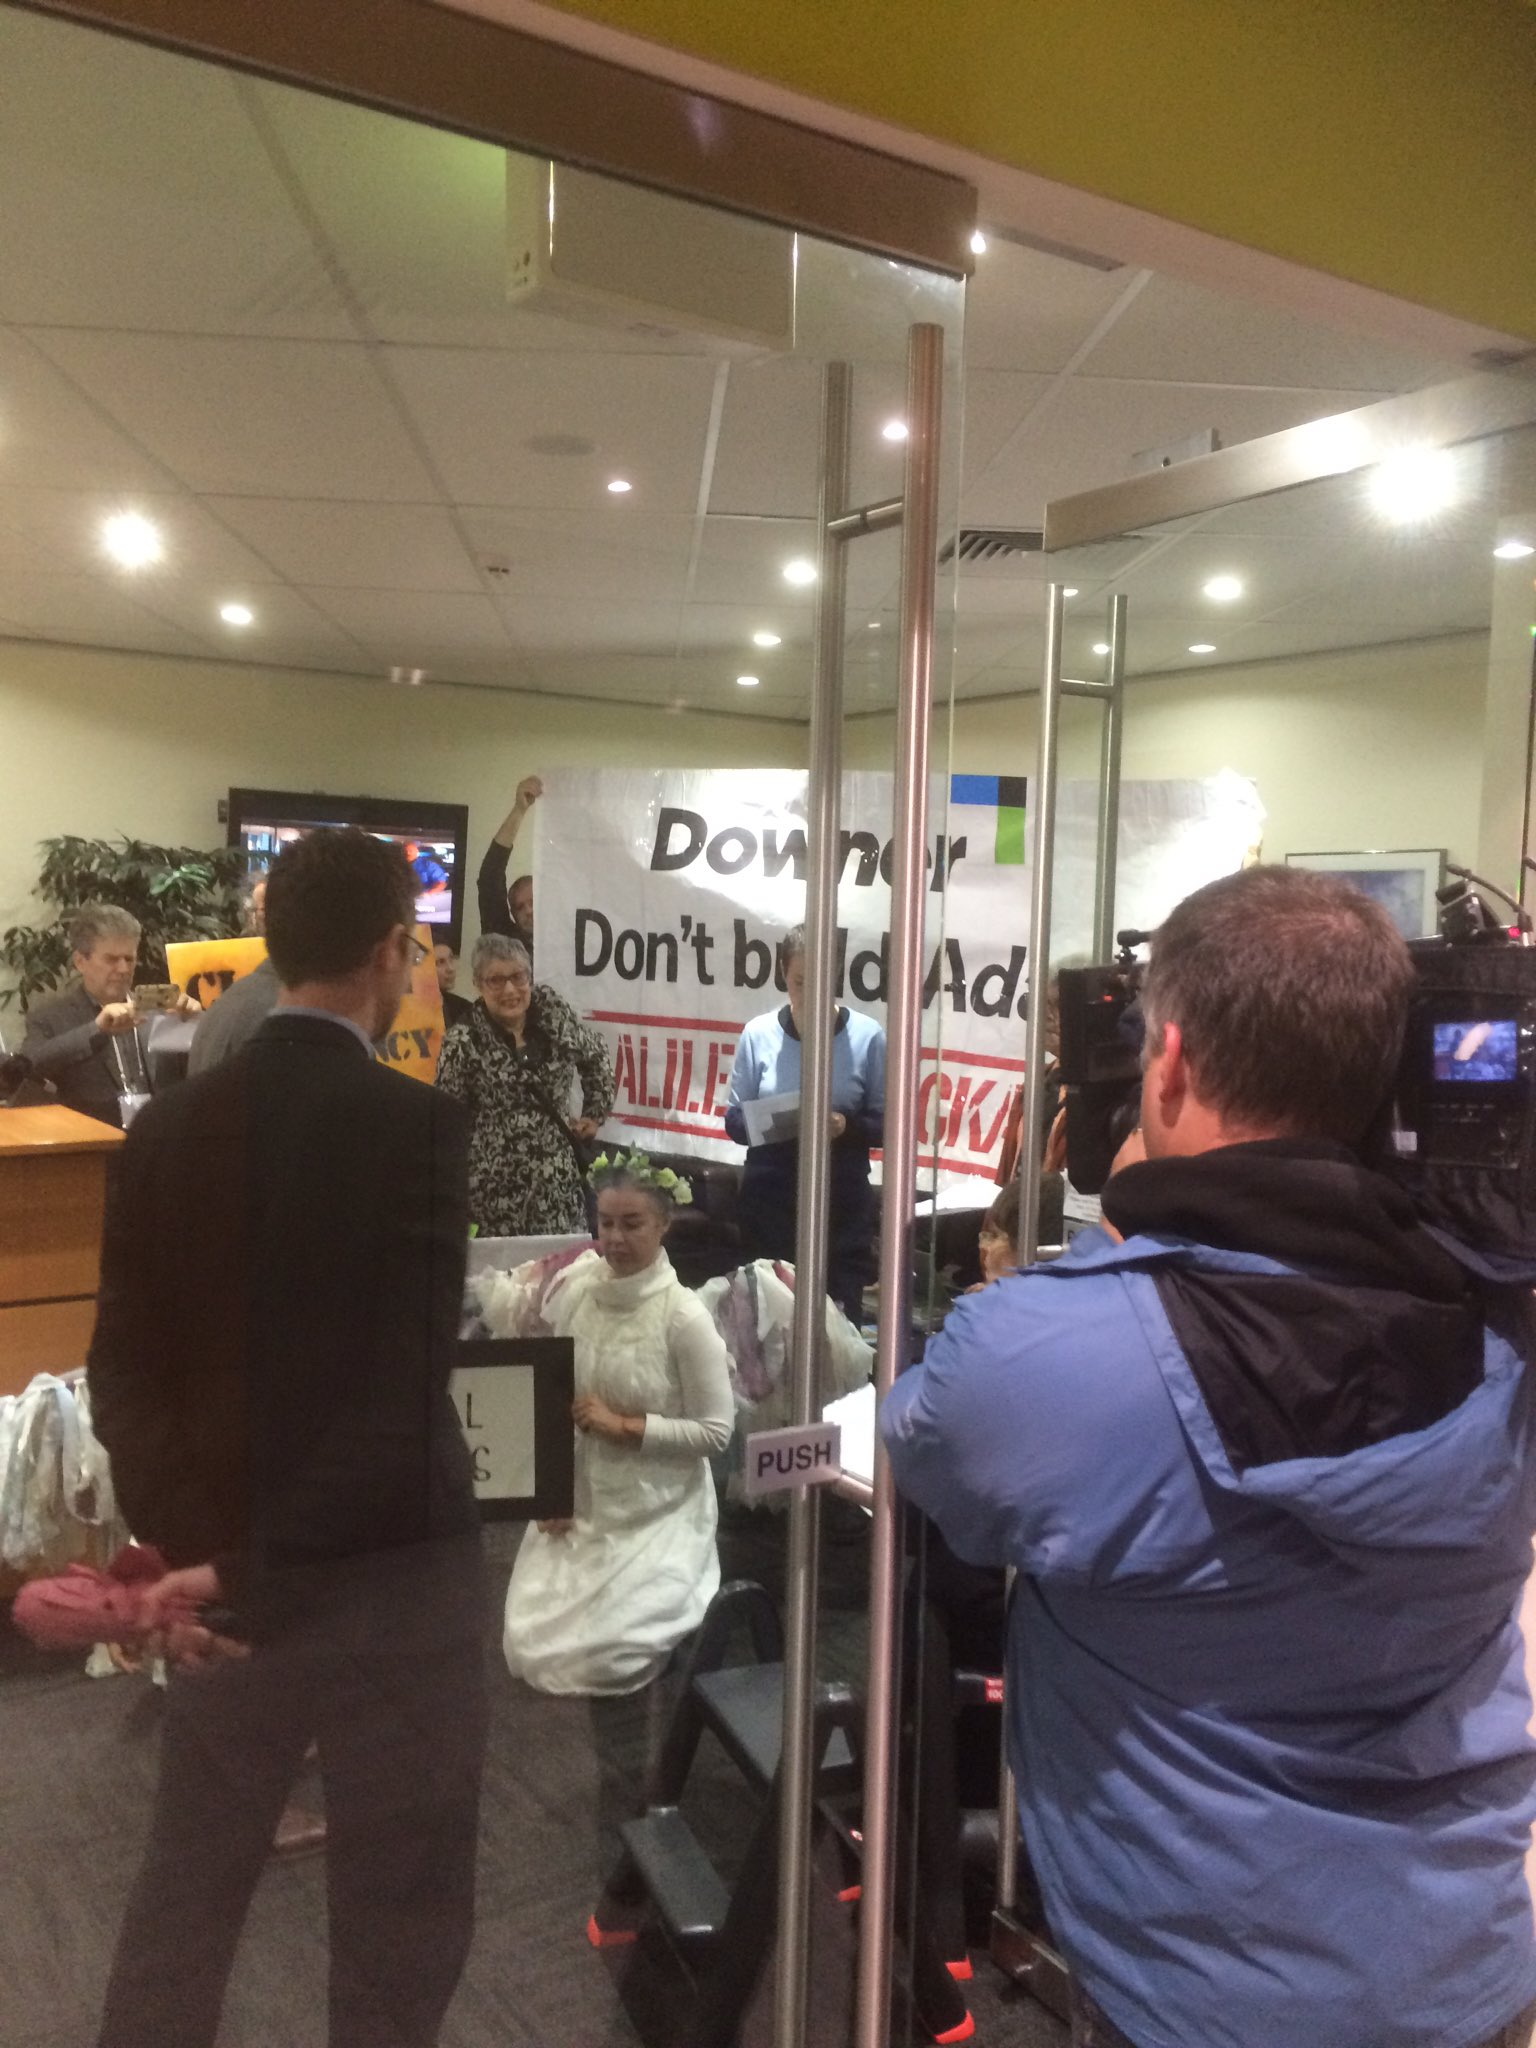 Concerned citizens are occupying the foyer of a Downer office to beg them not to build the Adani mine. #StopAdani @Downergroup #Auspol https://t.co/GNTSR3Sixc